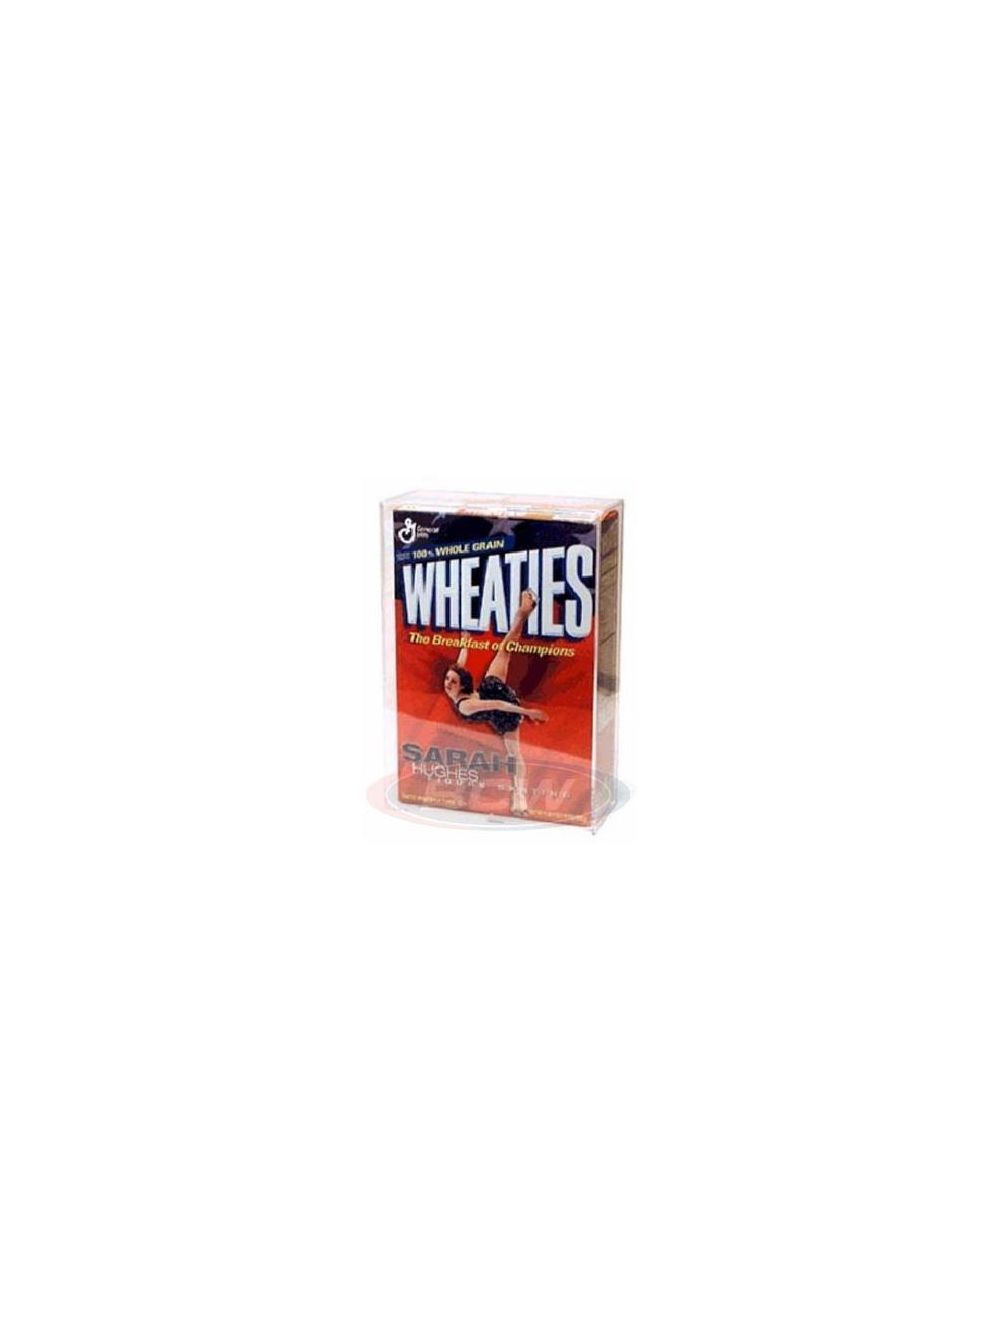 Nice Cereal Box Holder Display Case Display Cases 18oz 2019 Official Autographs-original